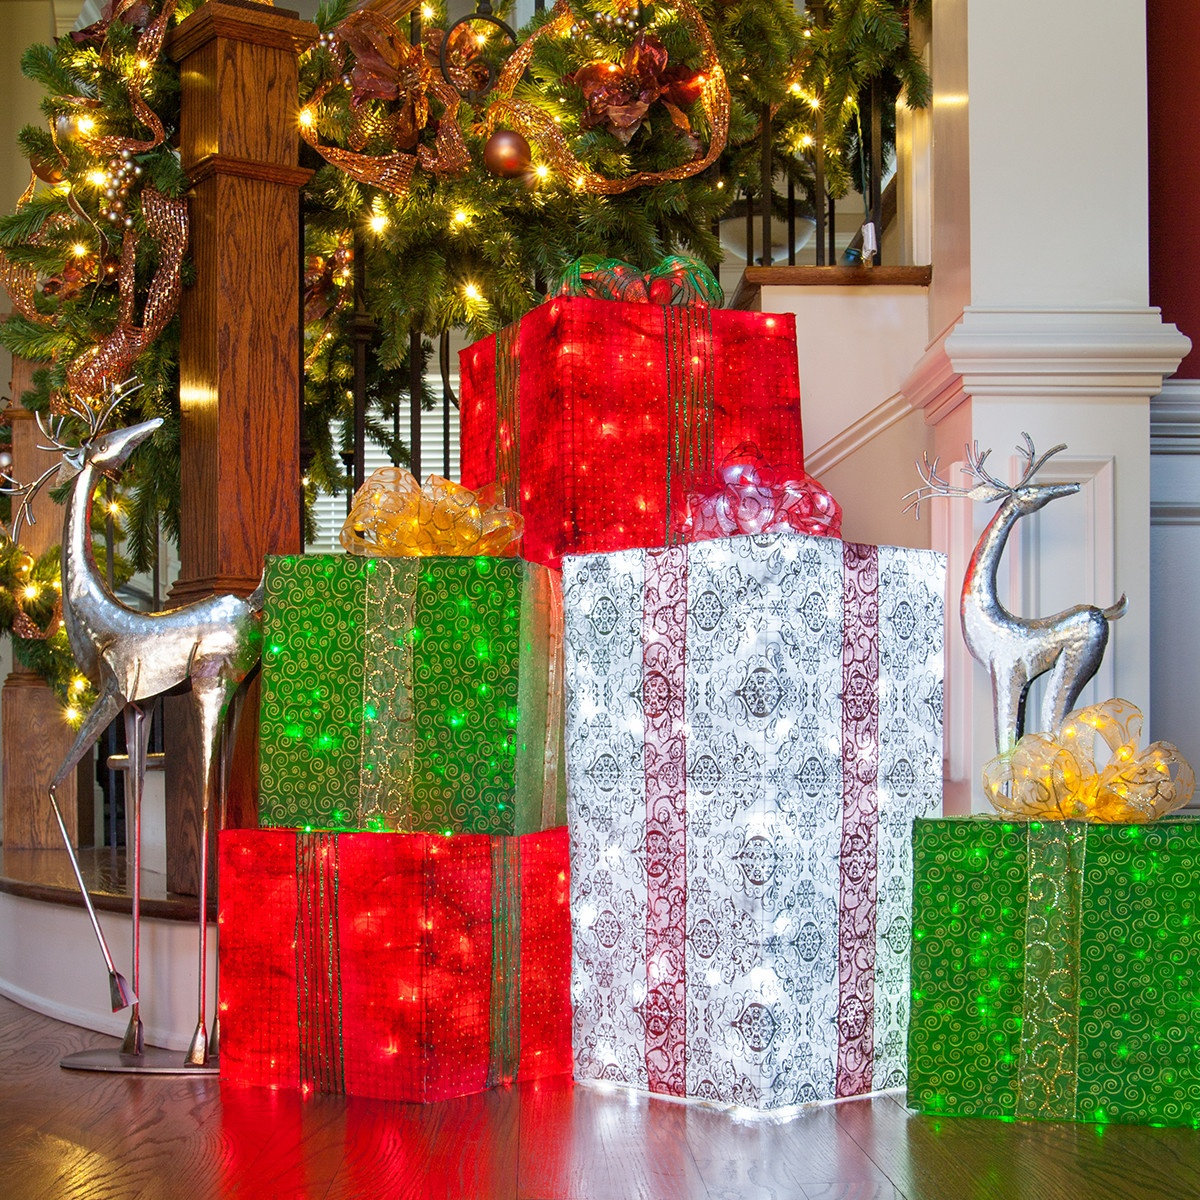 Diy christmas decorations 4 lighted gift boxes for Holiday lawn decorations